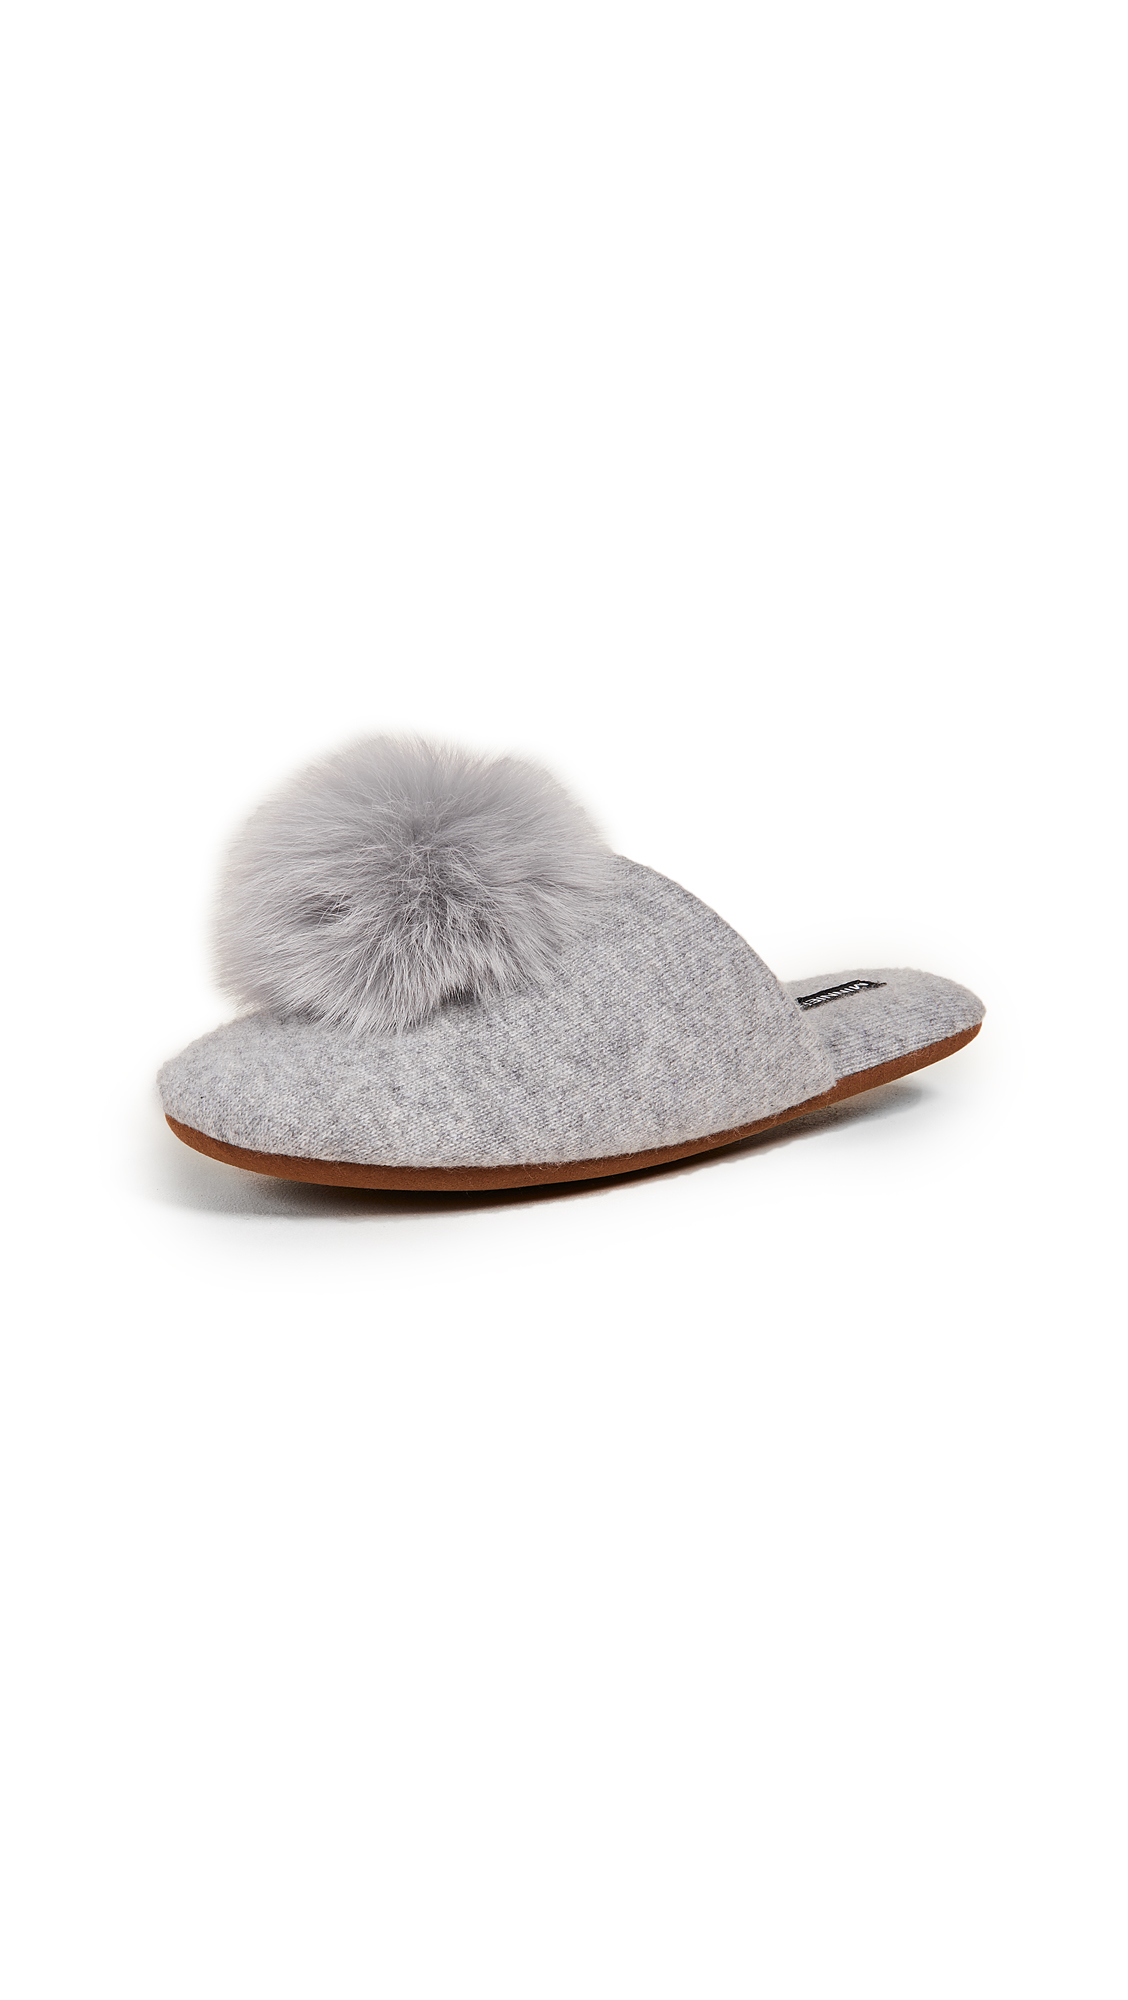 Minnie Rose Cashmere Pom Pom Slippers - Light Heather Grey